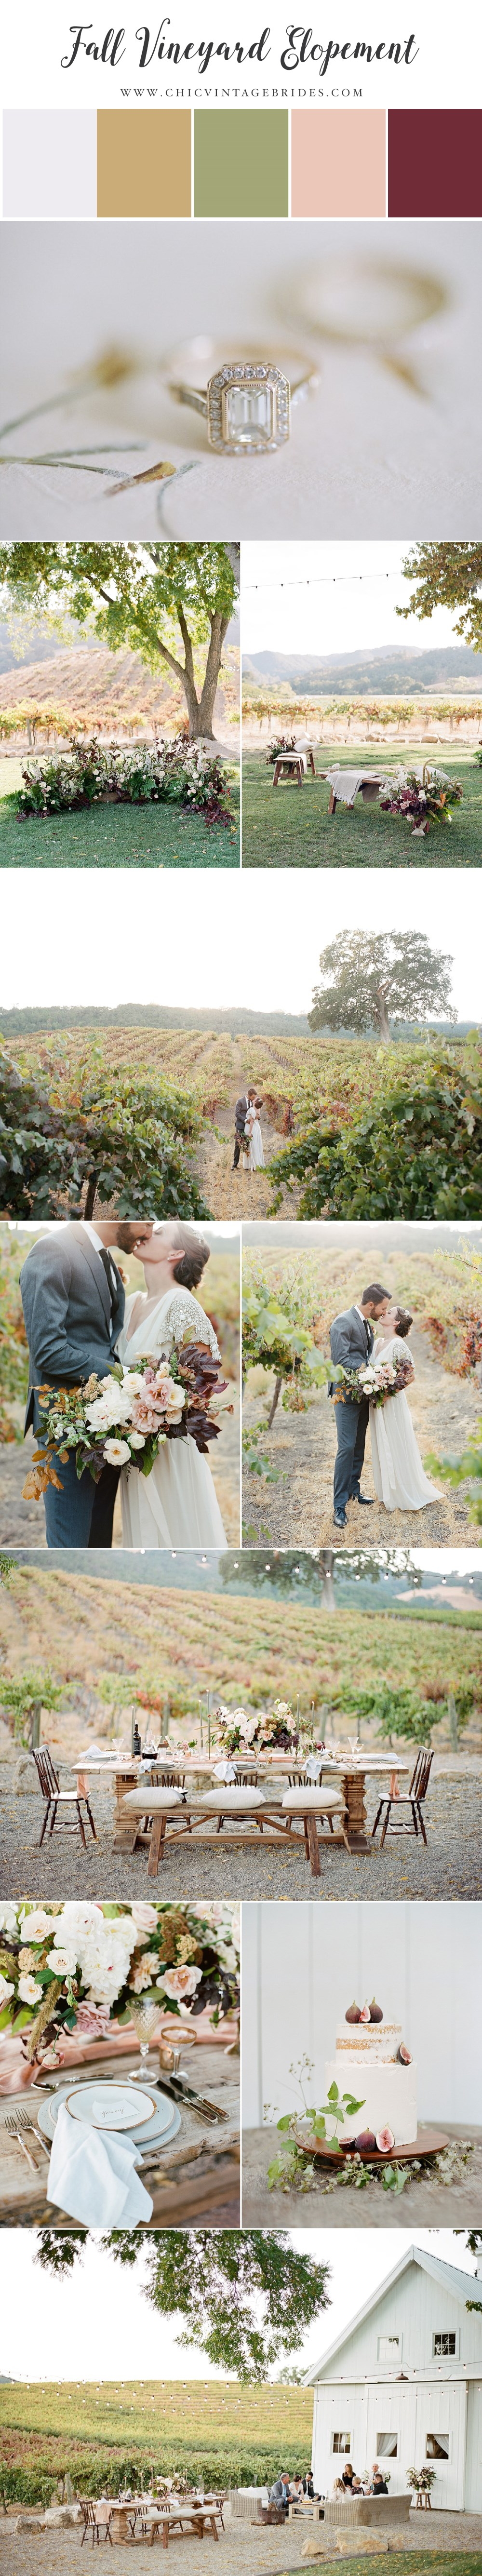 Modern Vintage Fall Elopement at HammerSky Vineyards